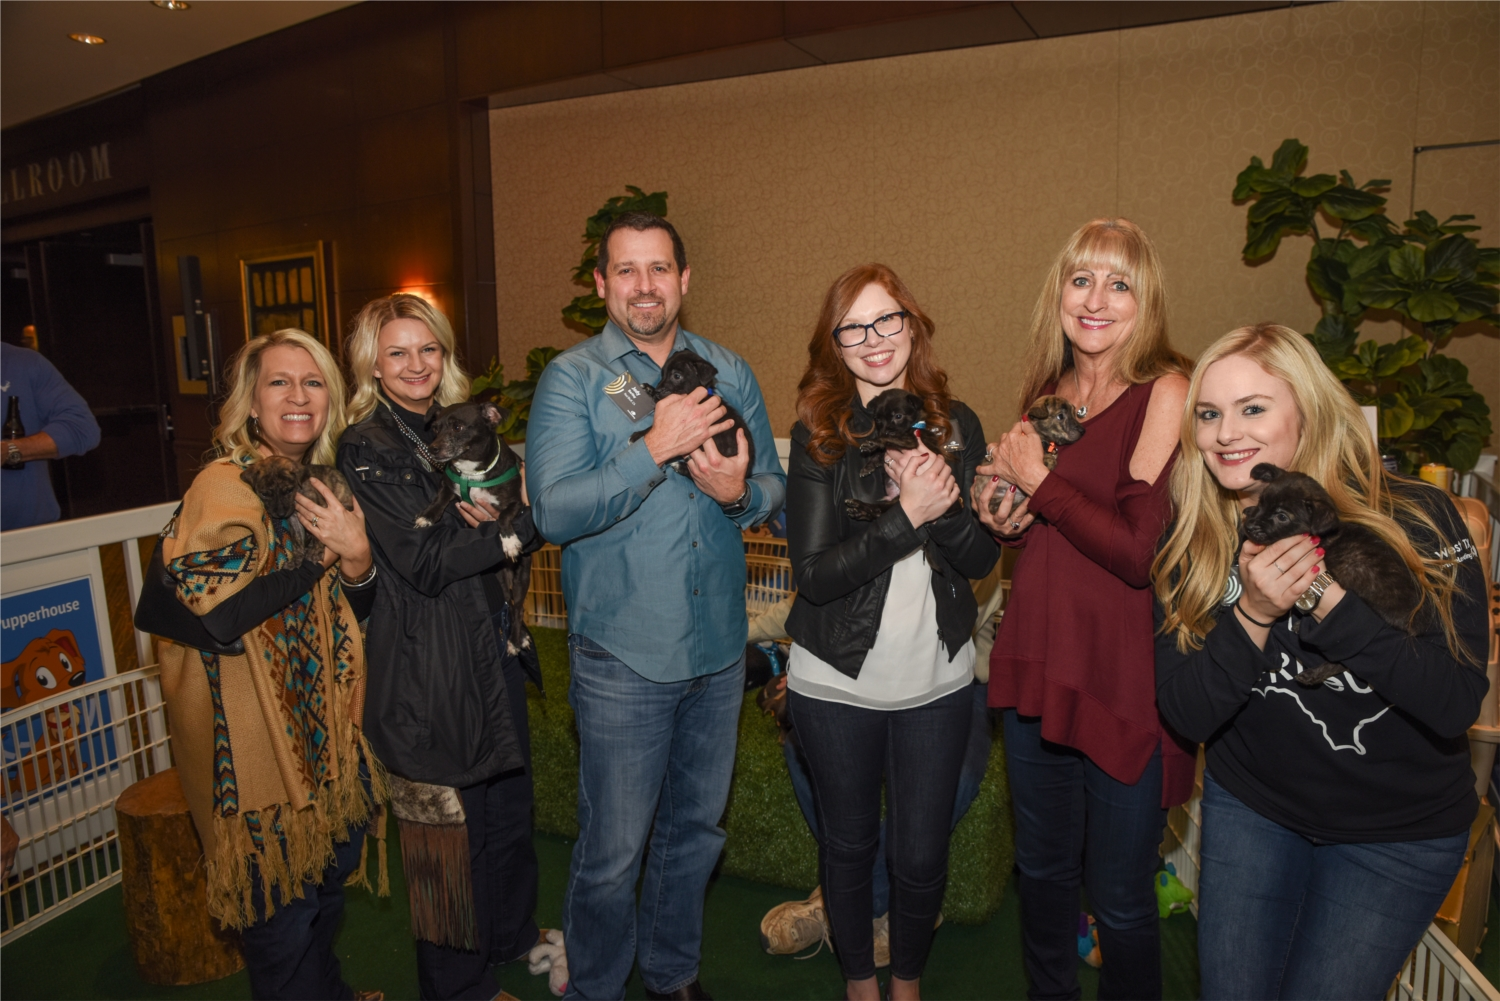 Attendees at our Annual Sales Rally snuggling with puppies up for adoption from local DFW dog rescues!